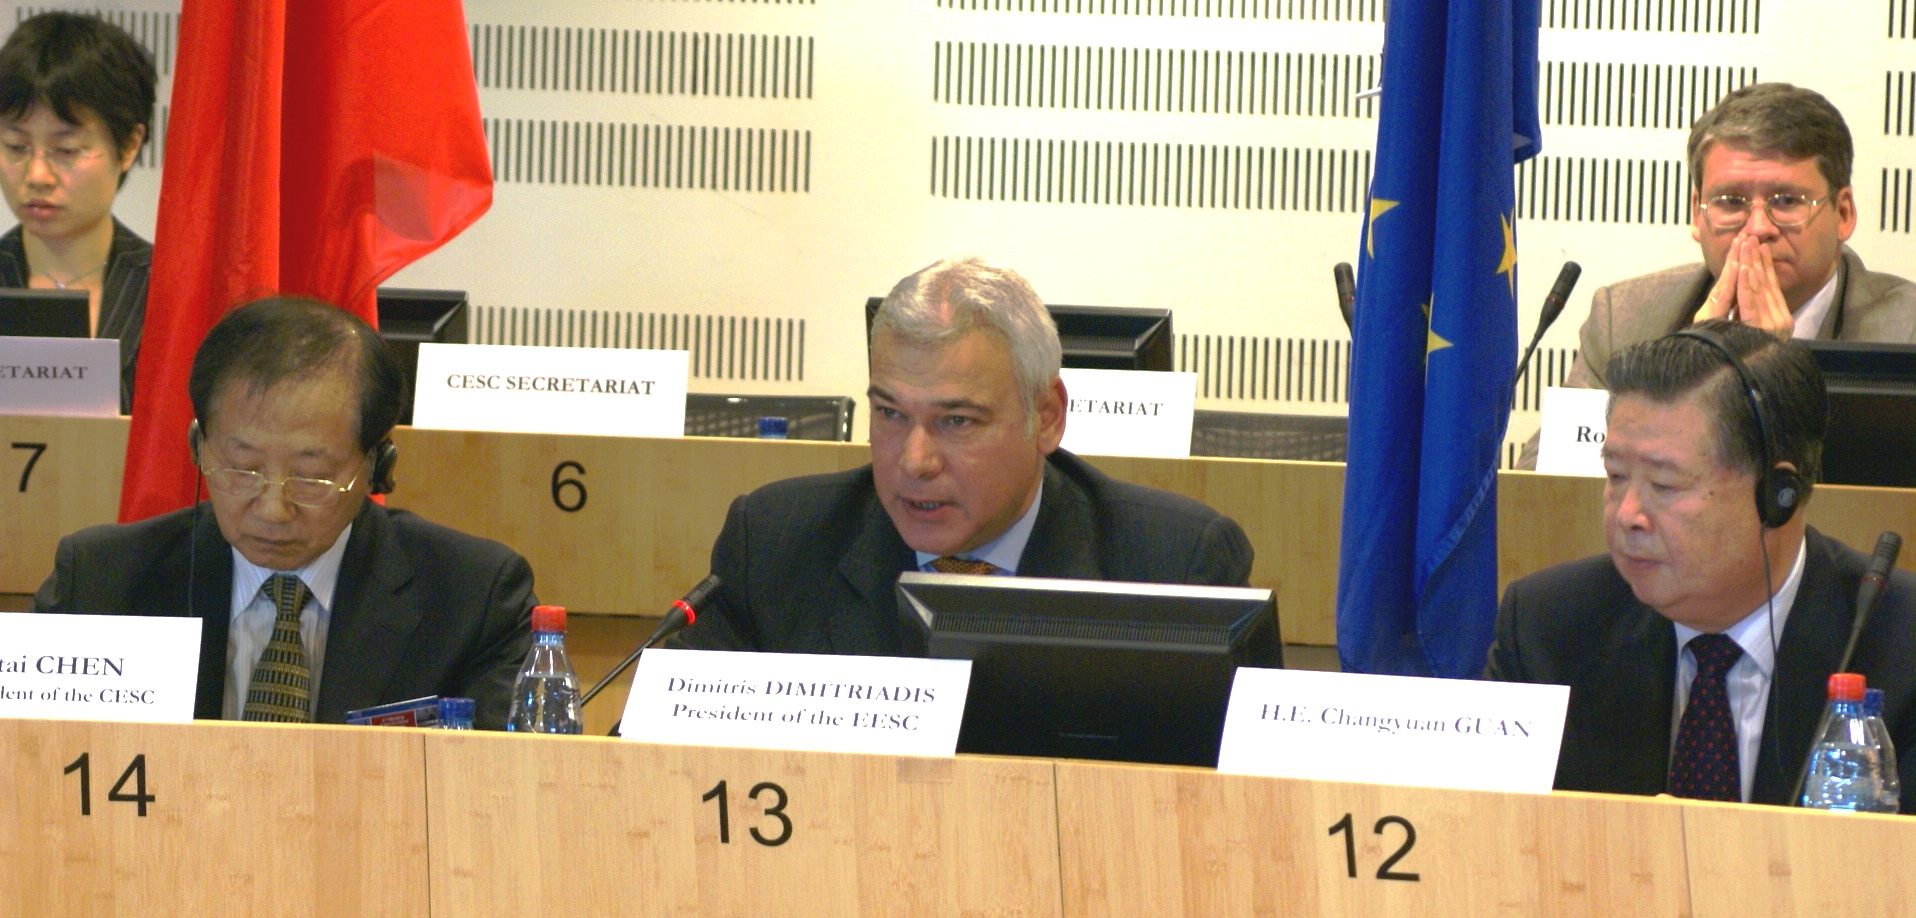 Pictures of the 2nd EU-China Round Table